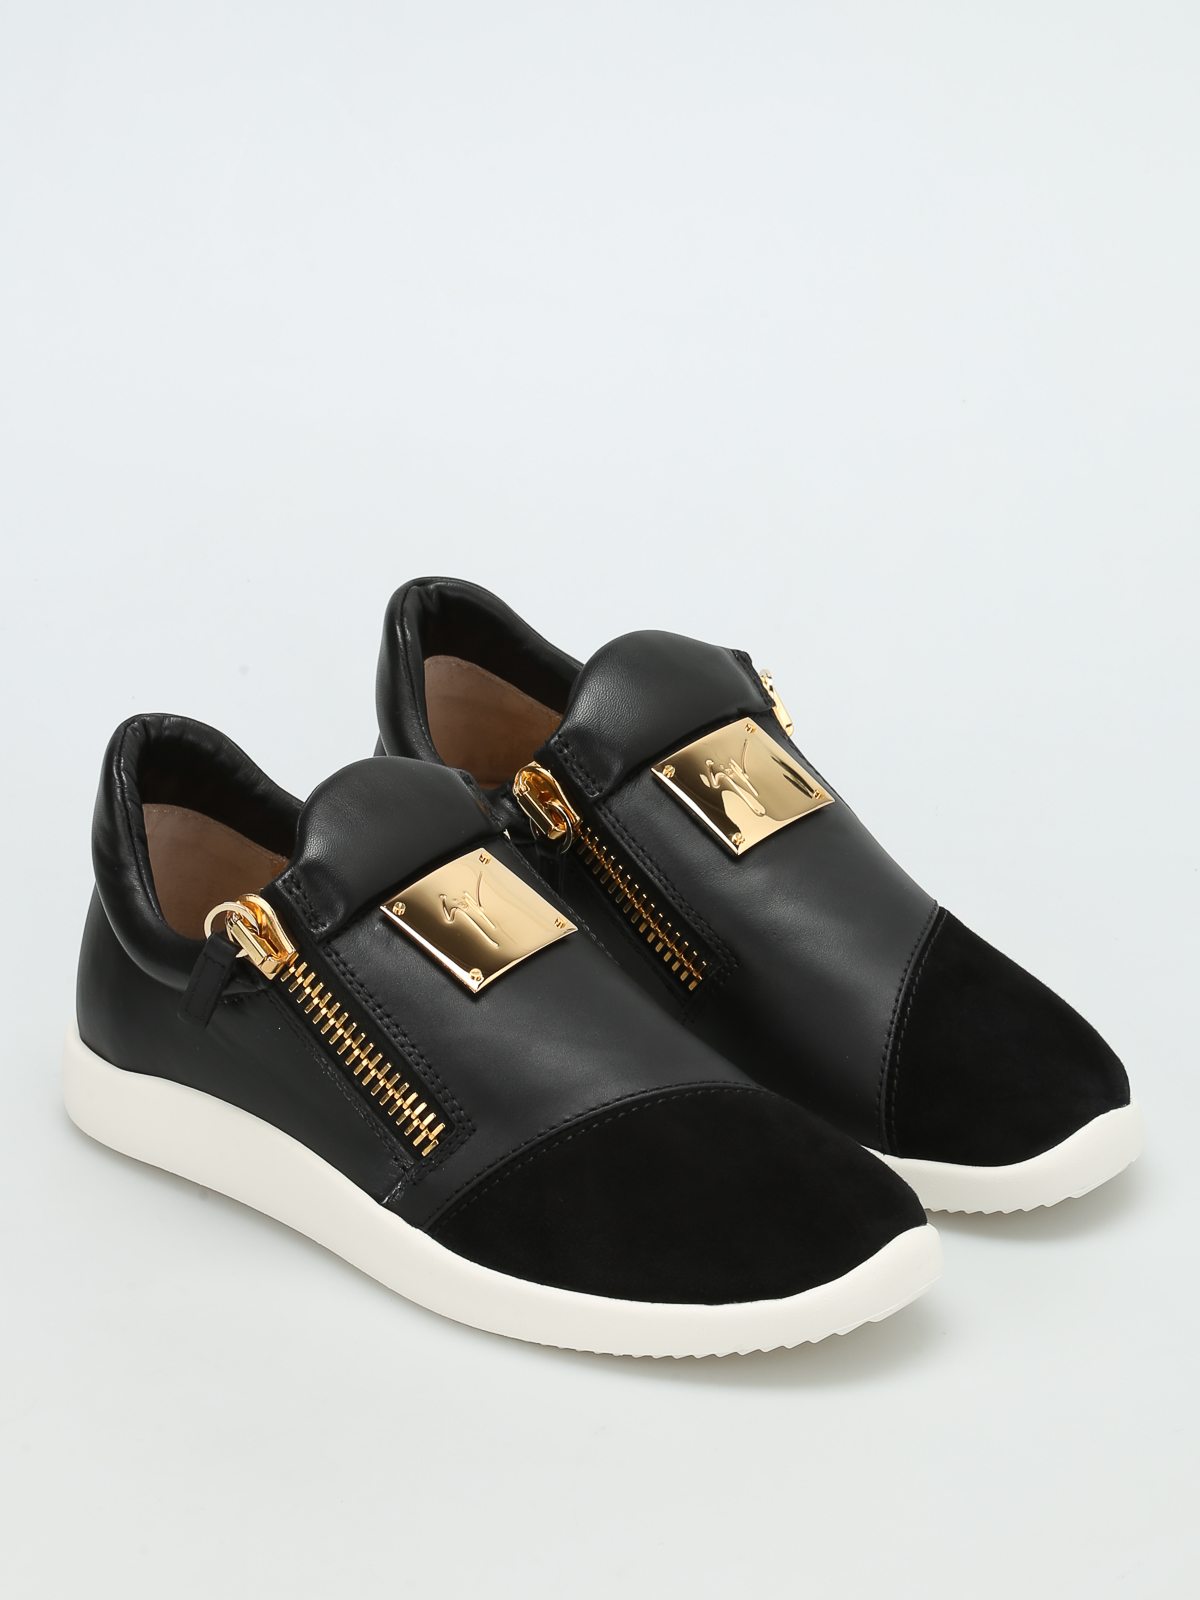 Y3 Shoes Sale Ebay | OIS Group